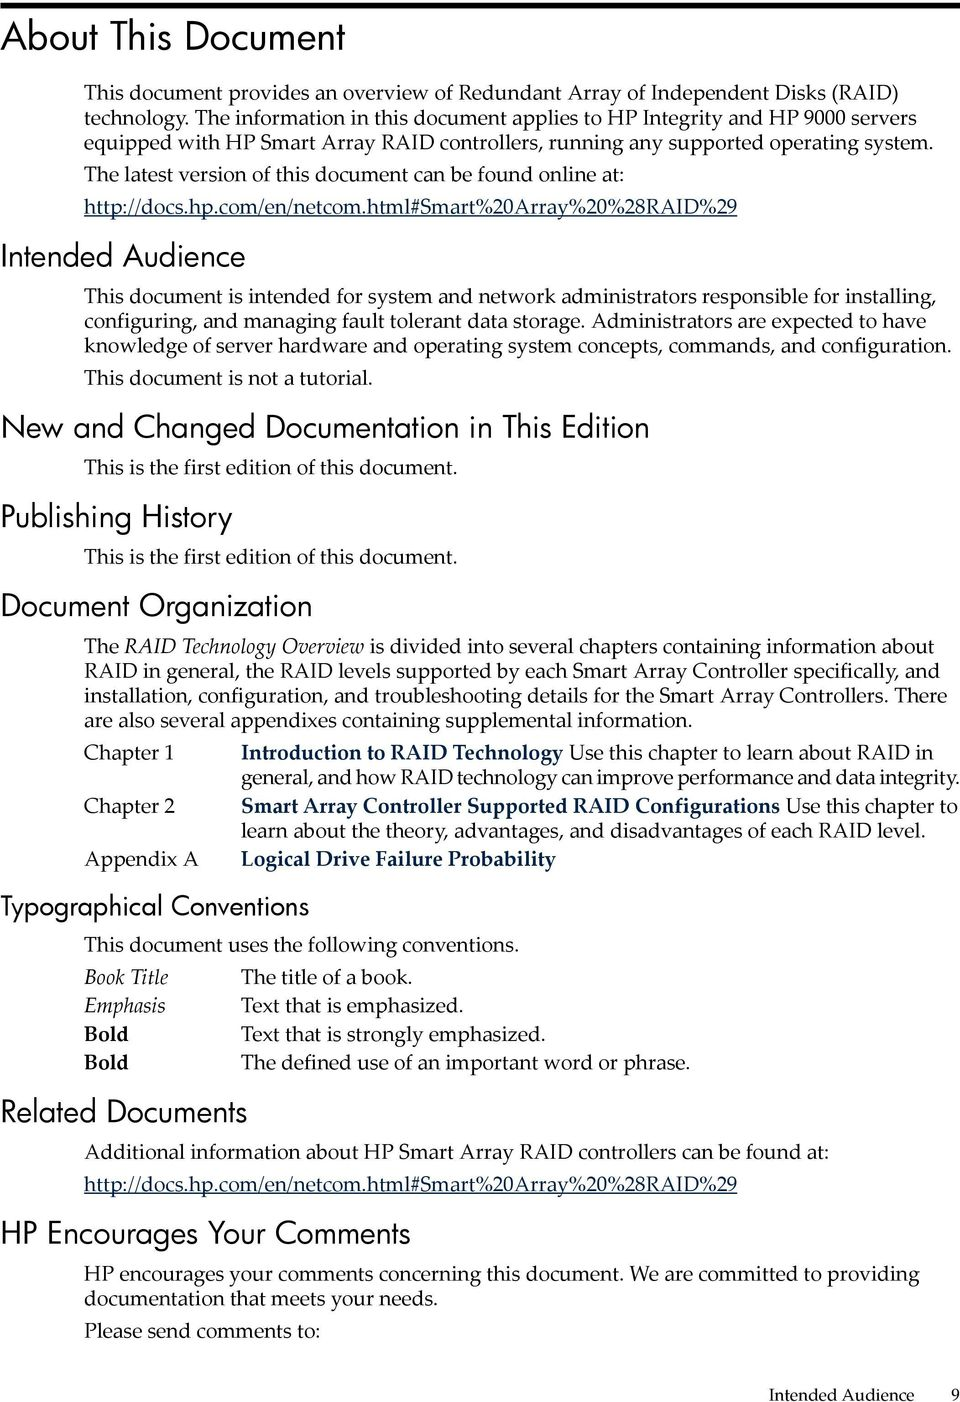 The latest version of this document can be found online at: http://docs.hp.com/en/netcom.